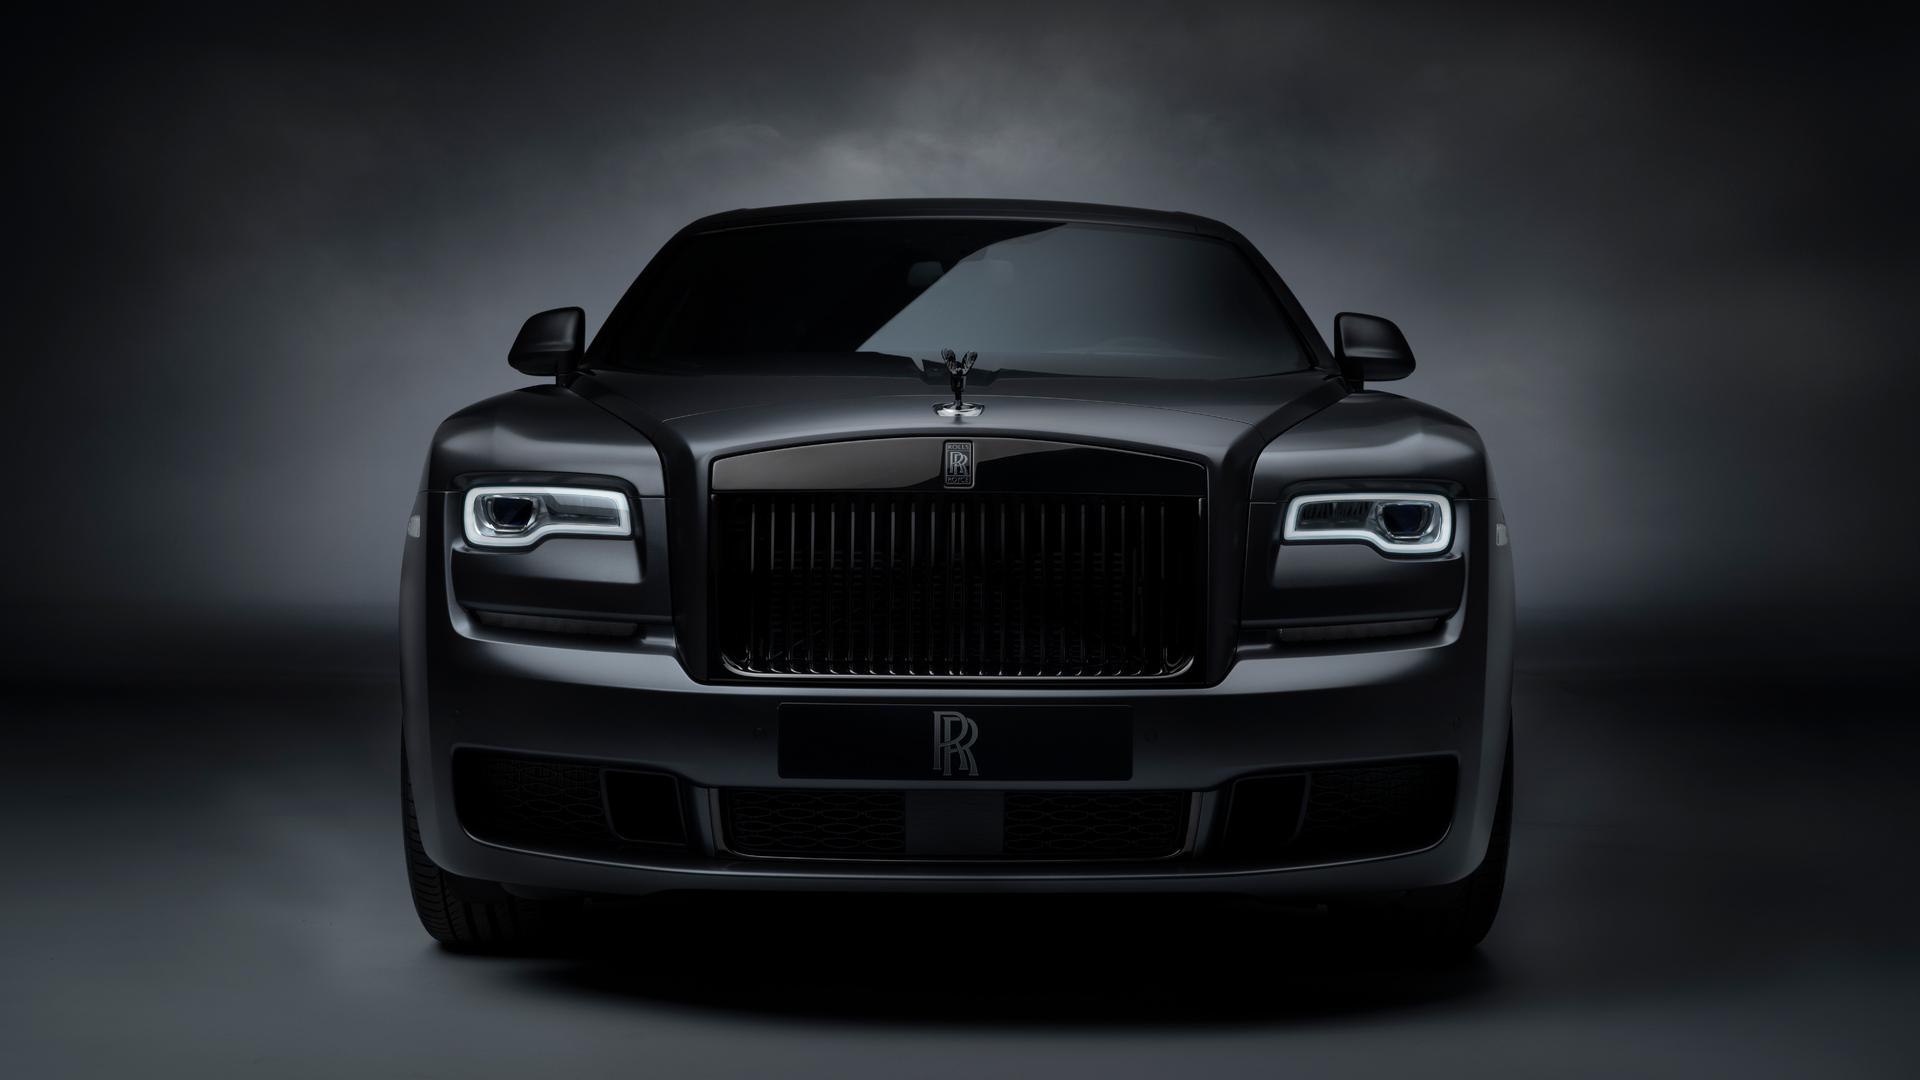 1920x1080 Rolls Royce Ghost Black Badge 2019 Front Laptop ...